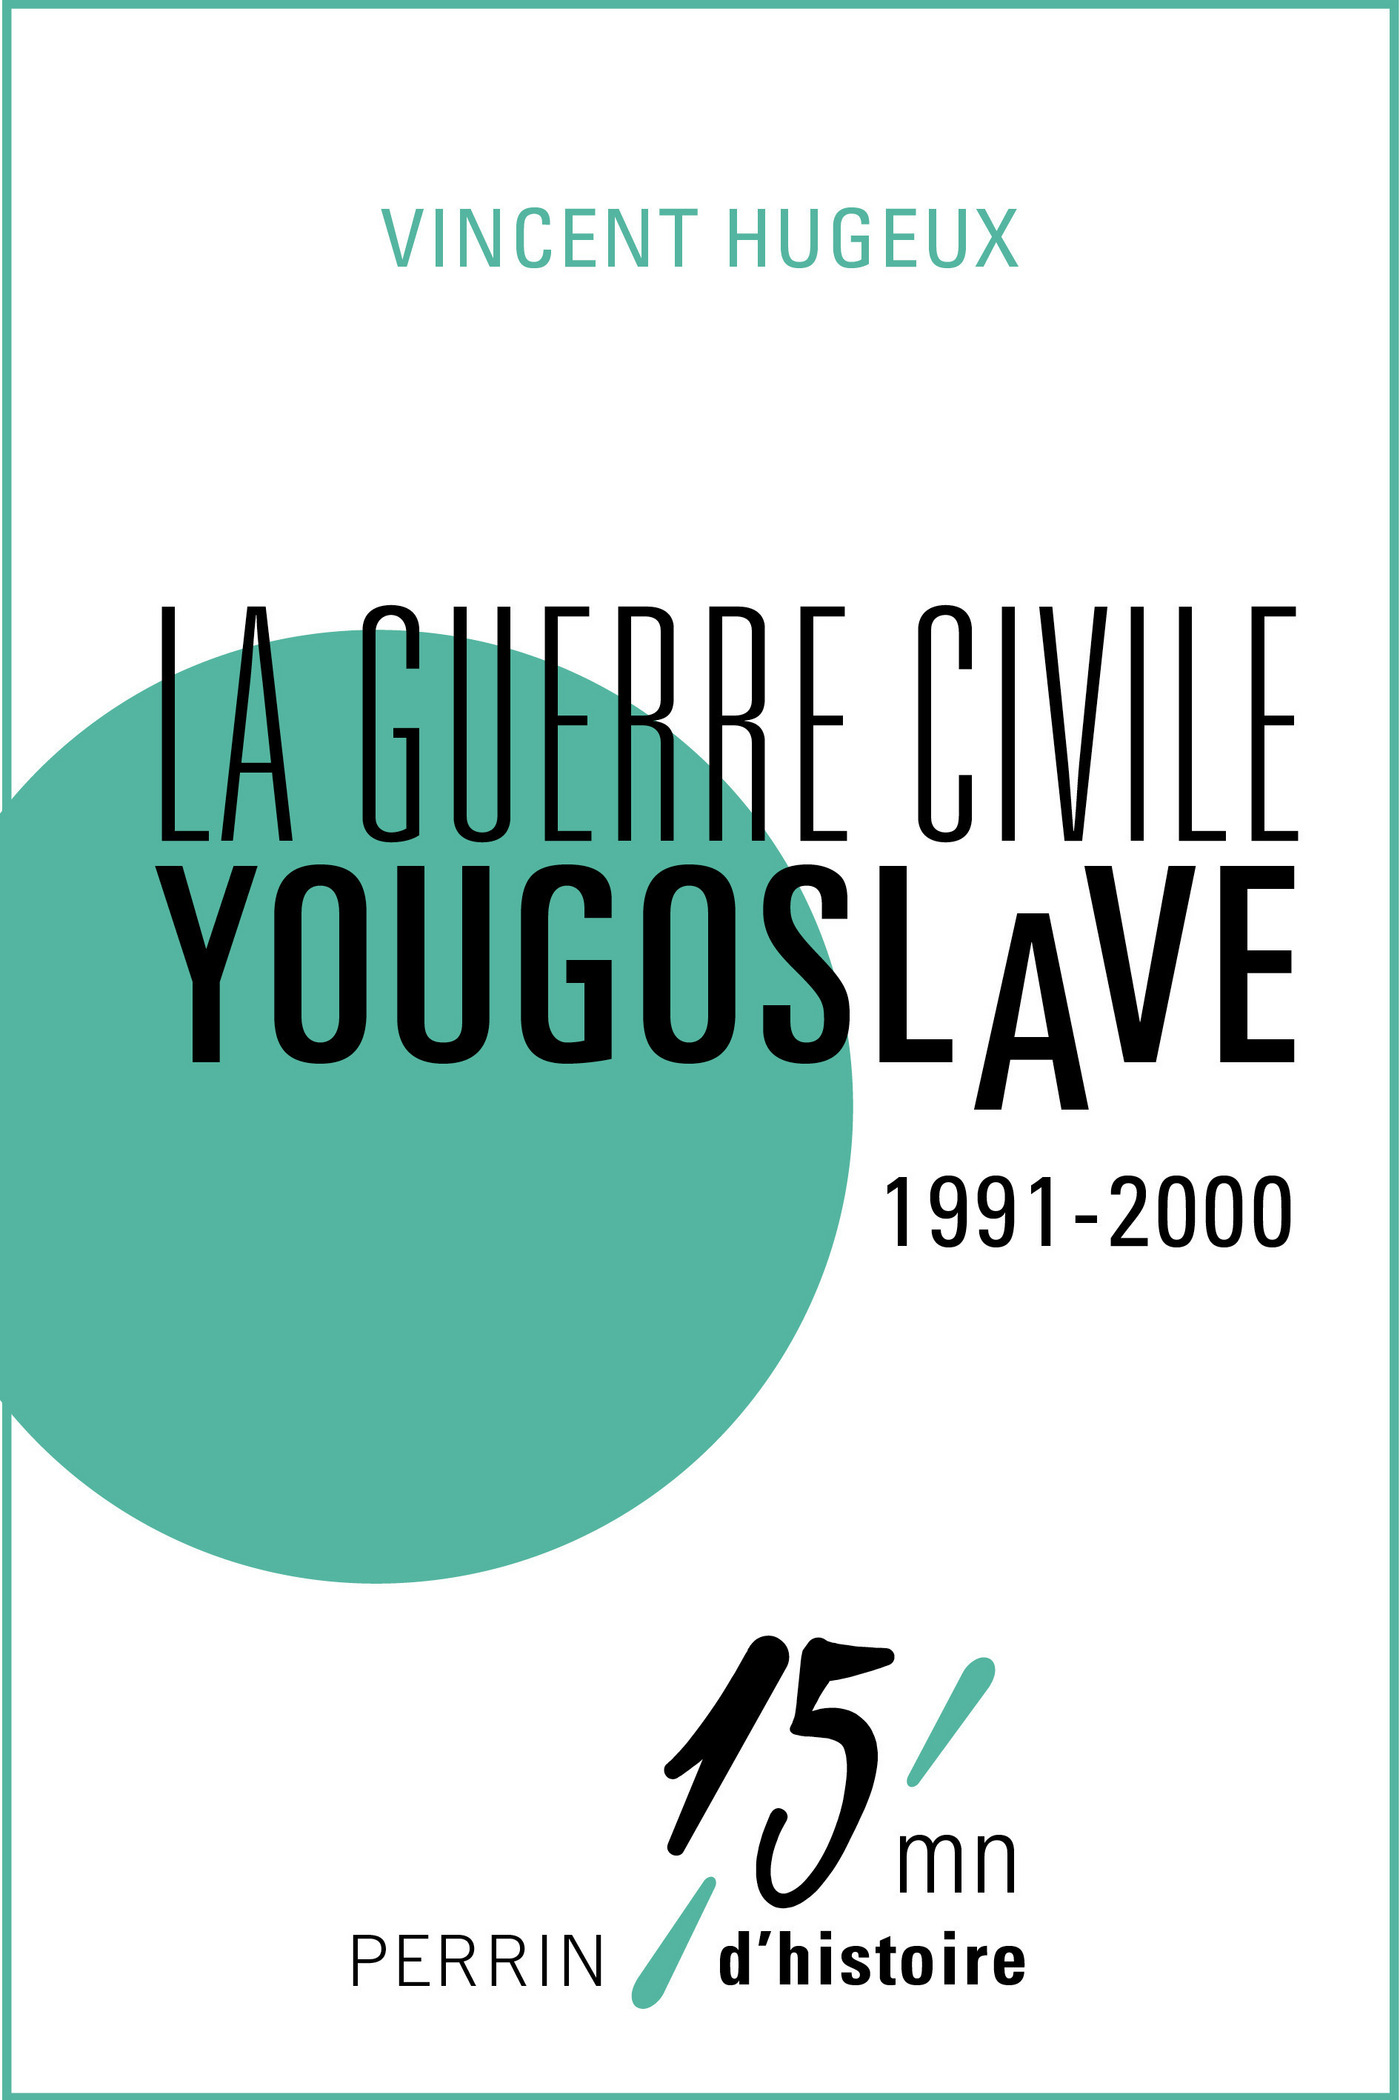 La guerre civile yougoslave 1991-2000 (ebook)